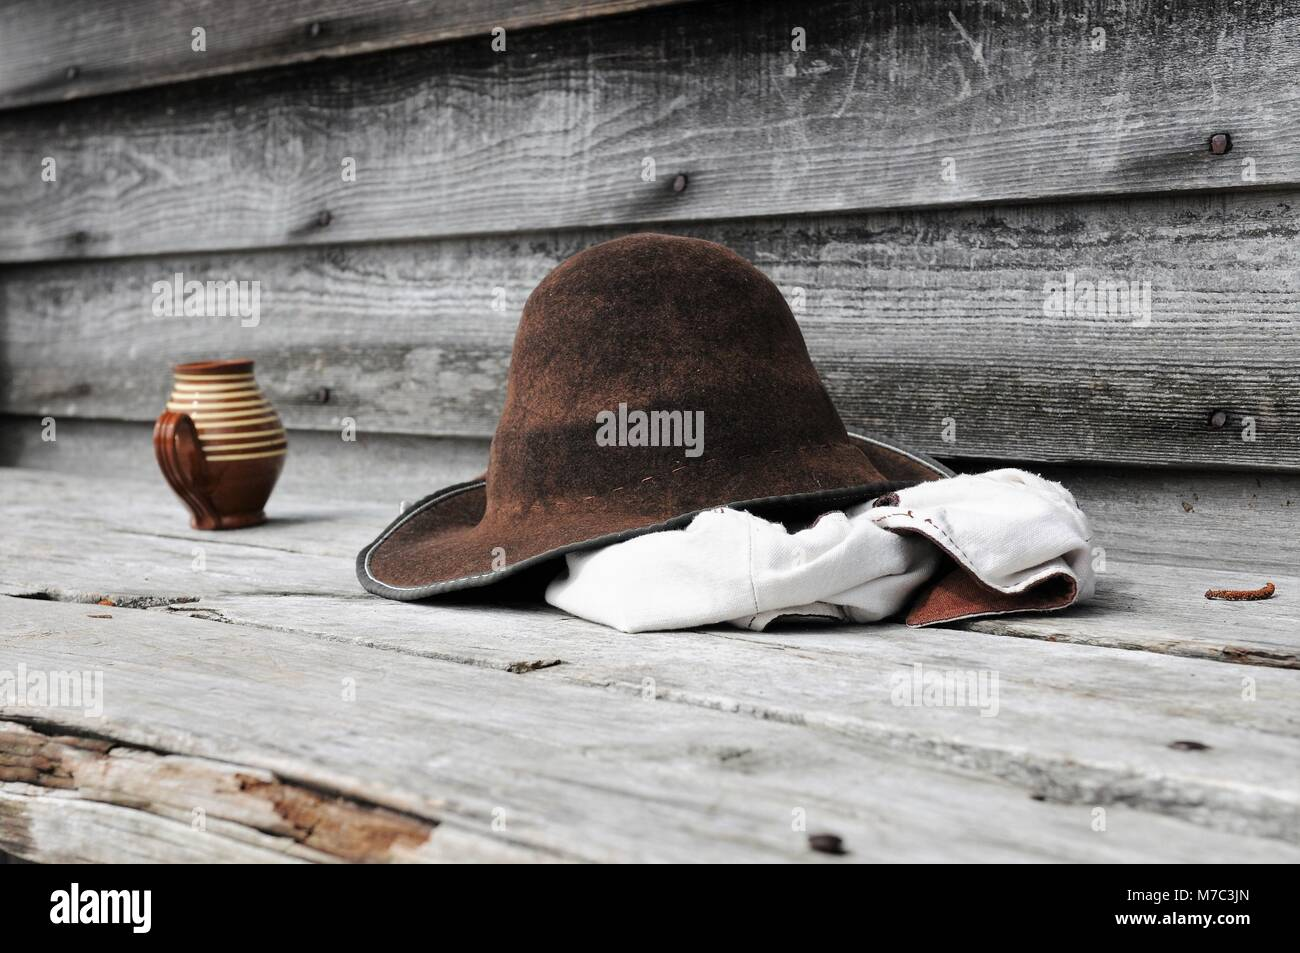 Hat, white vest and mug sitting on the dock at the Jamestown Settlement in Virginia - Stock Image